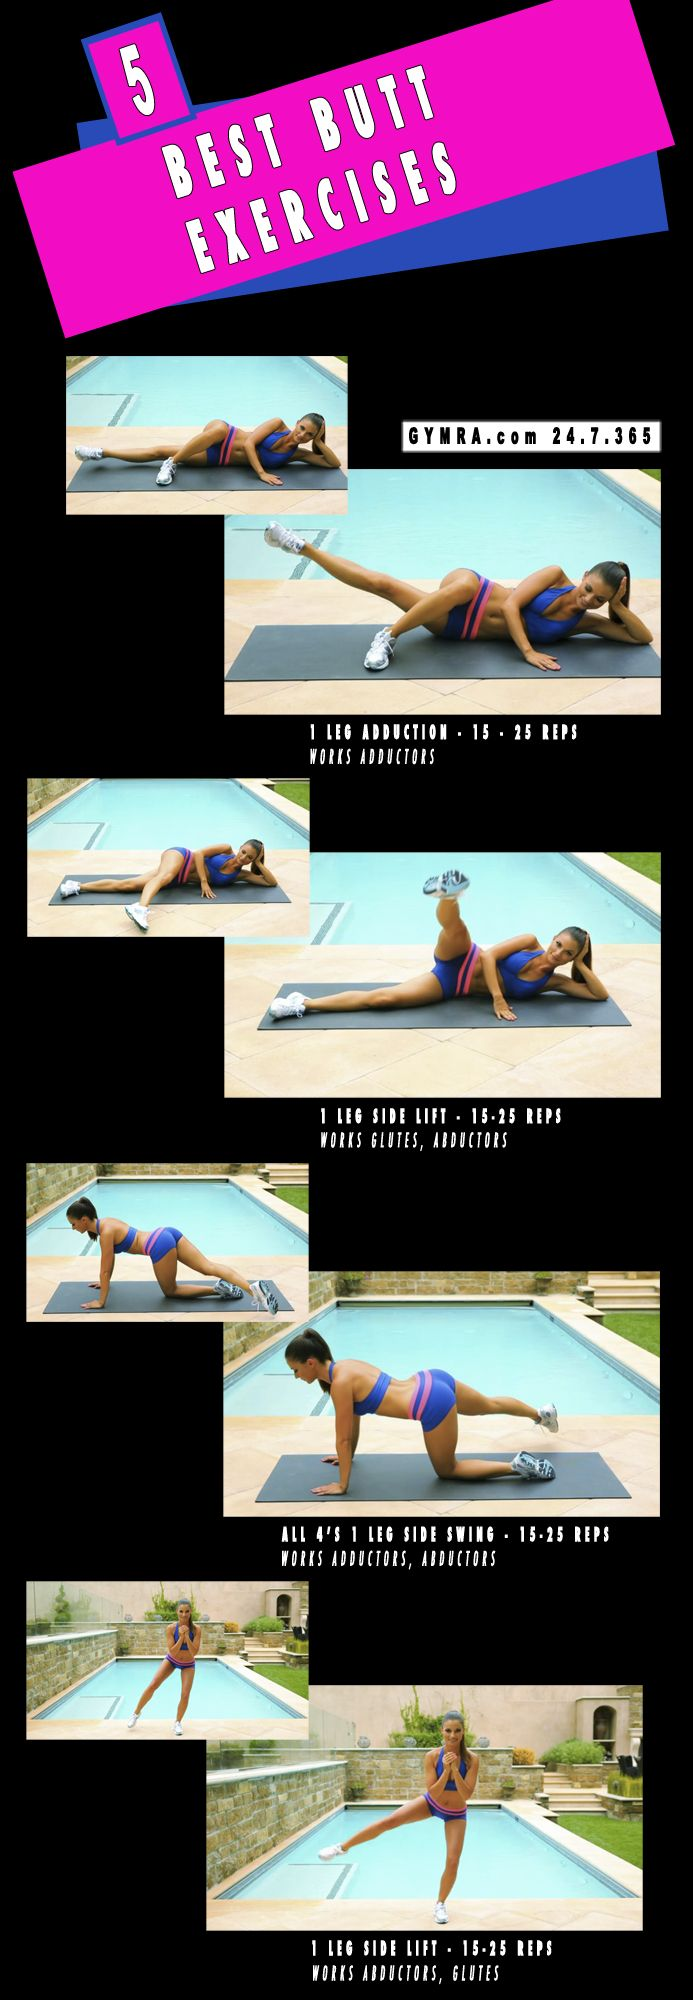 Build your own workouts or make computer generated ones using mini videos & GIFS at gymra.com.